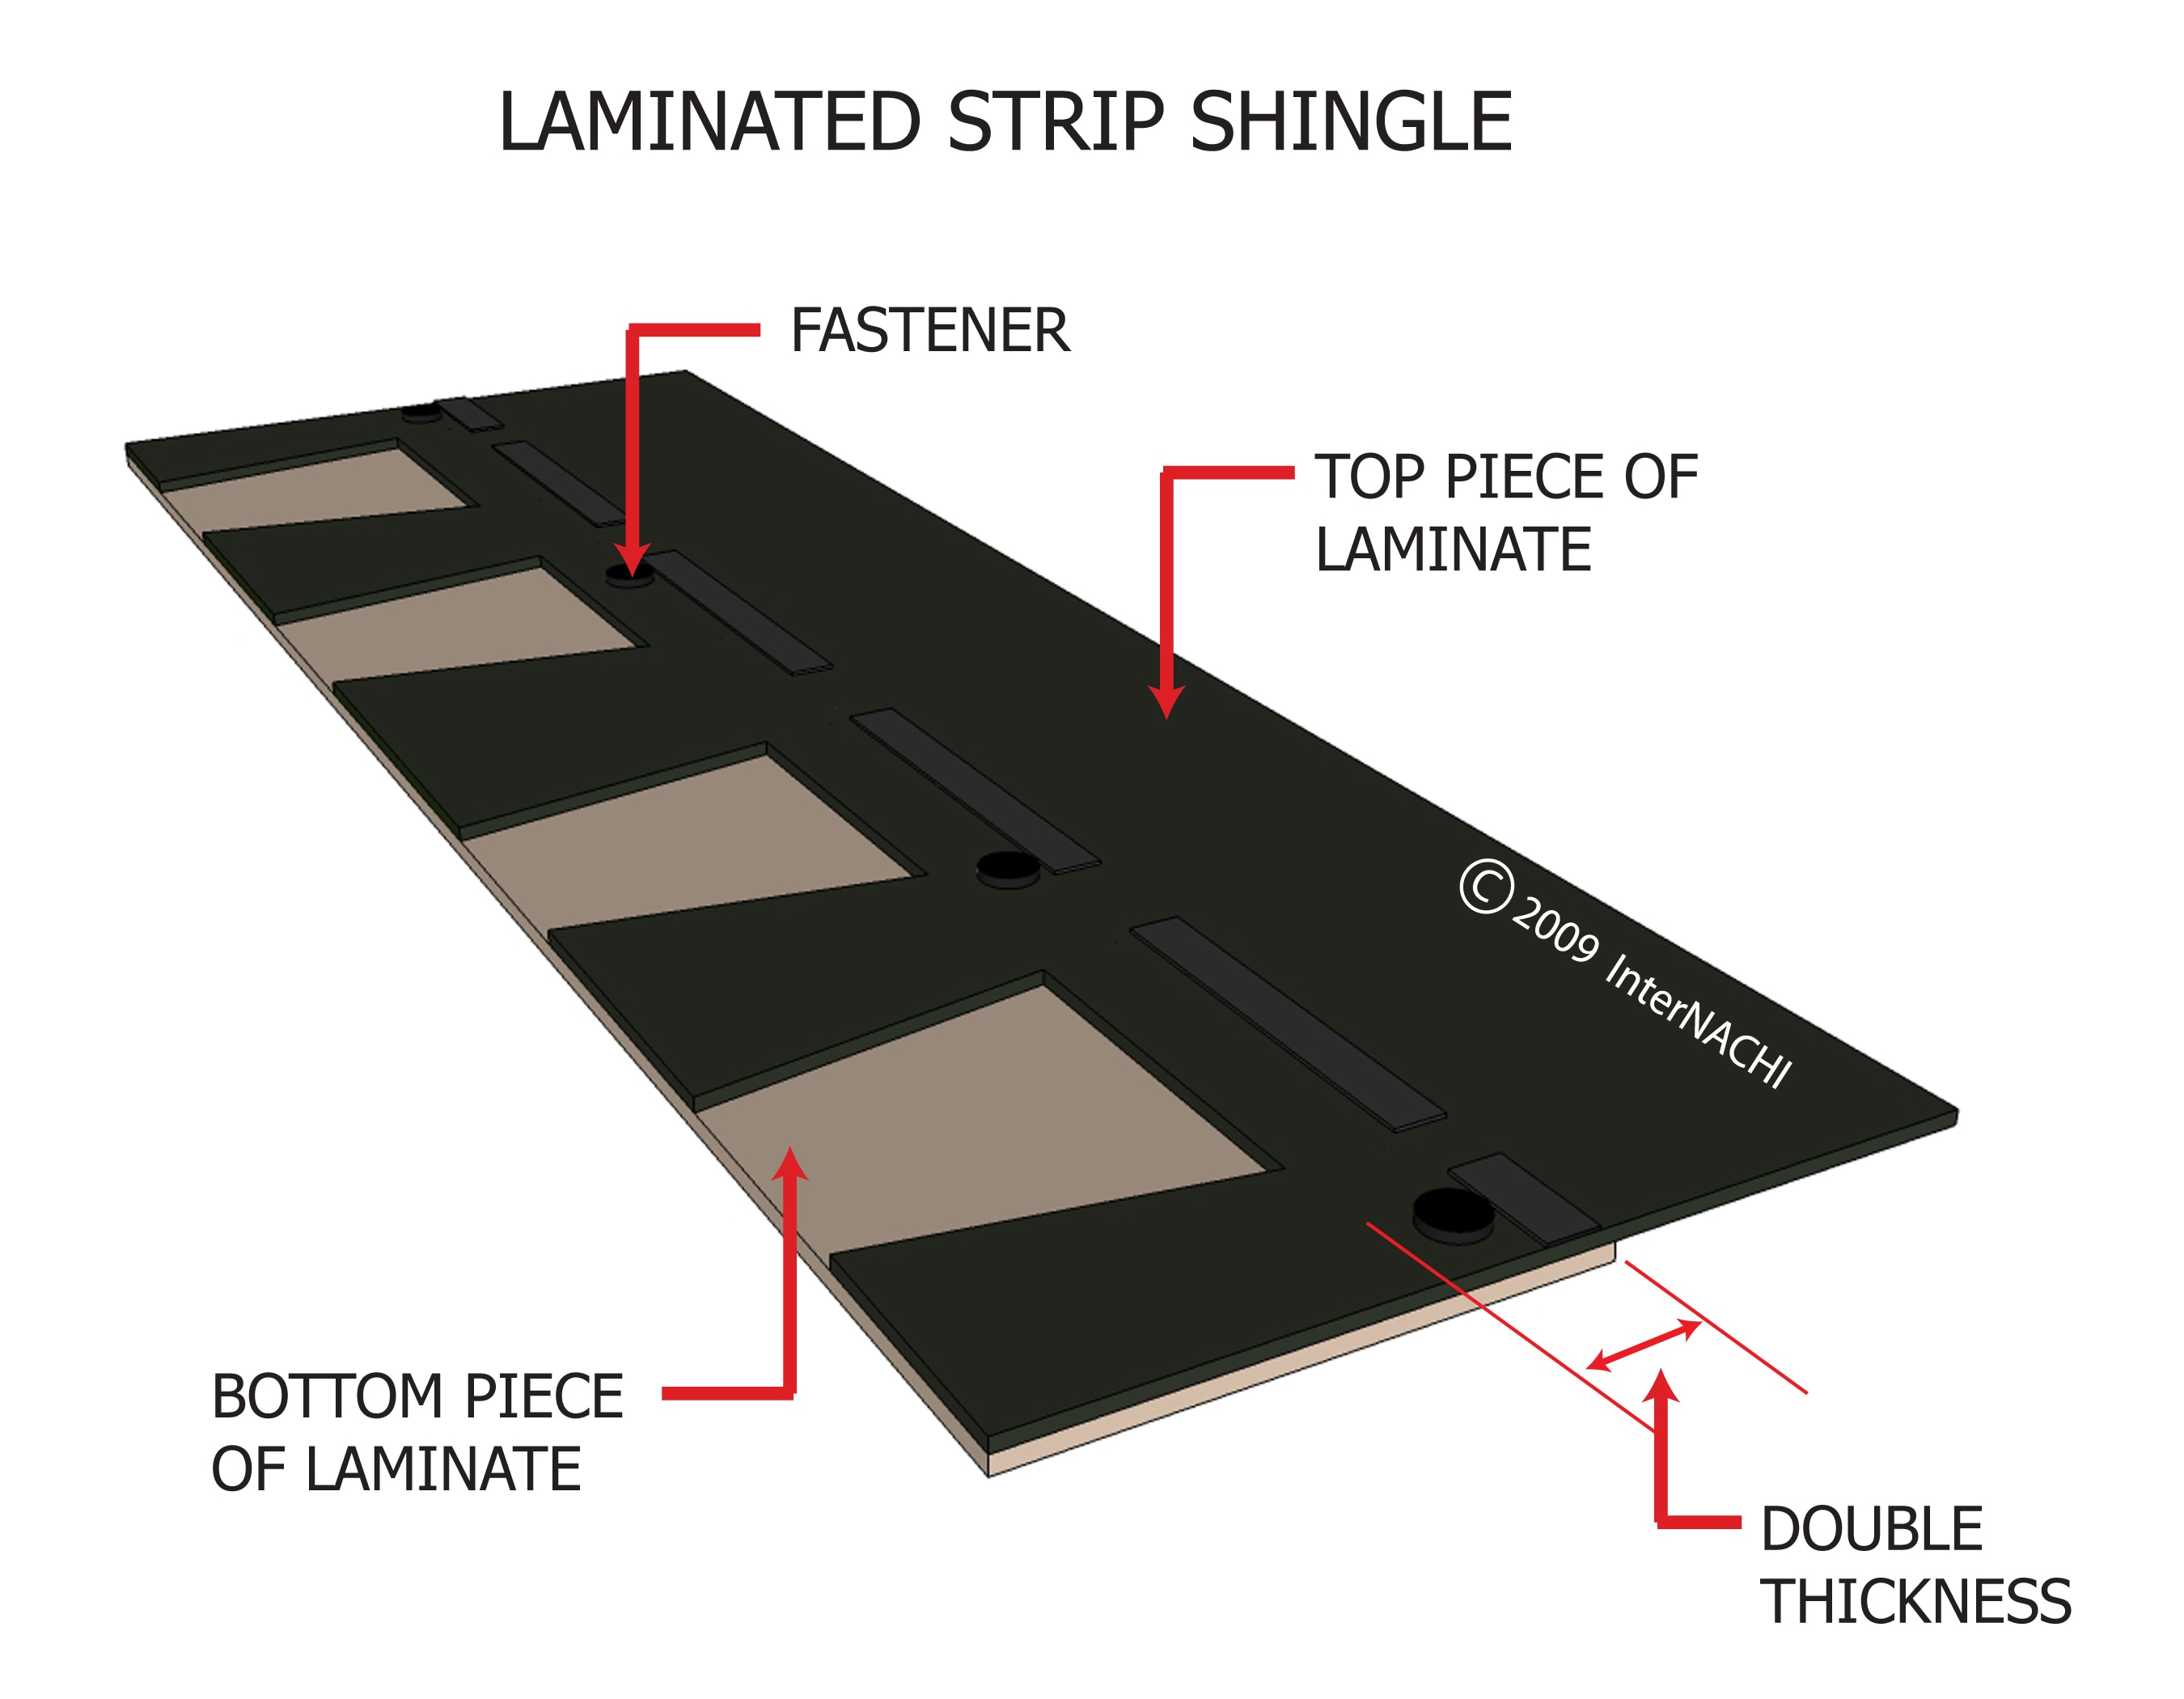 Laminated strip shingles.